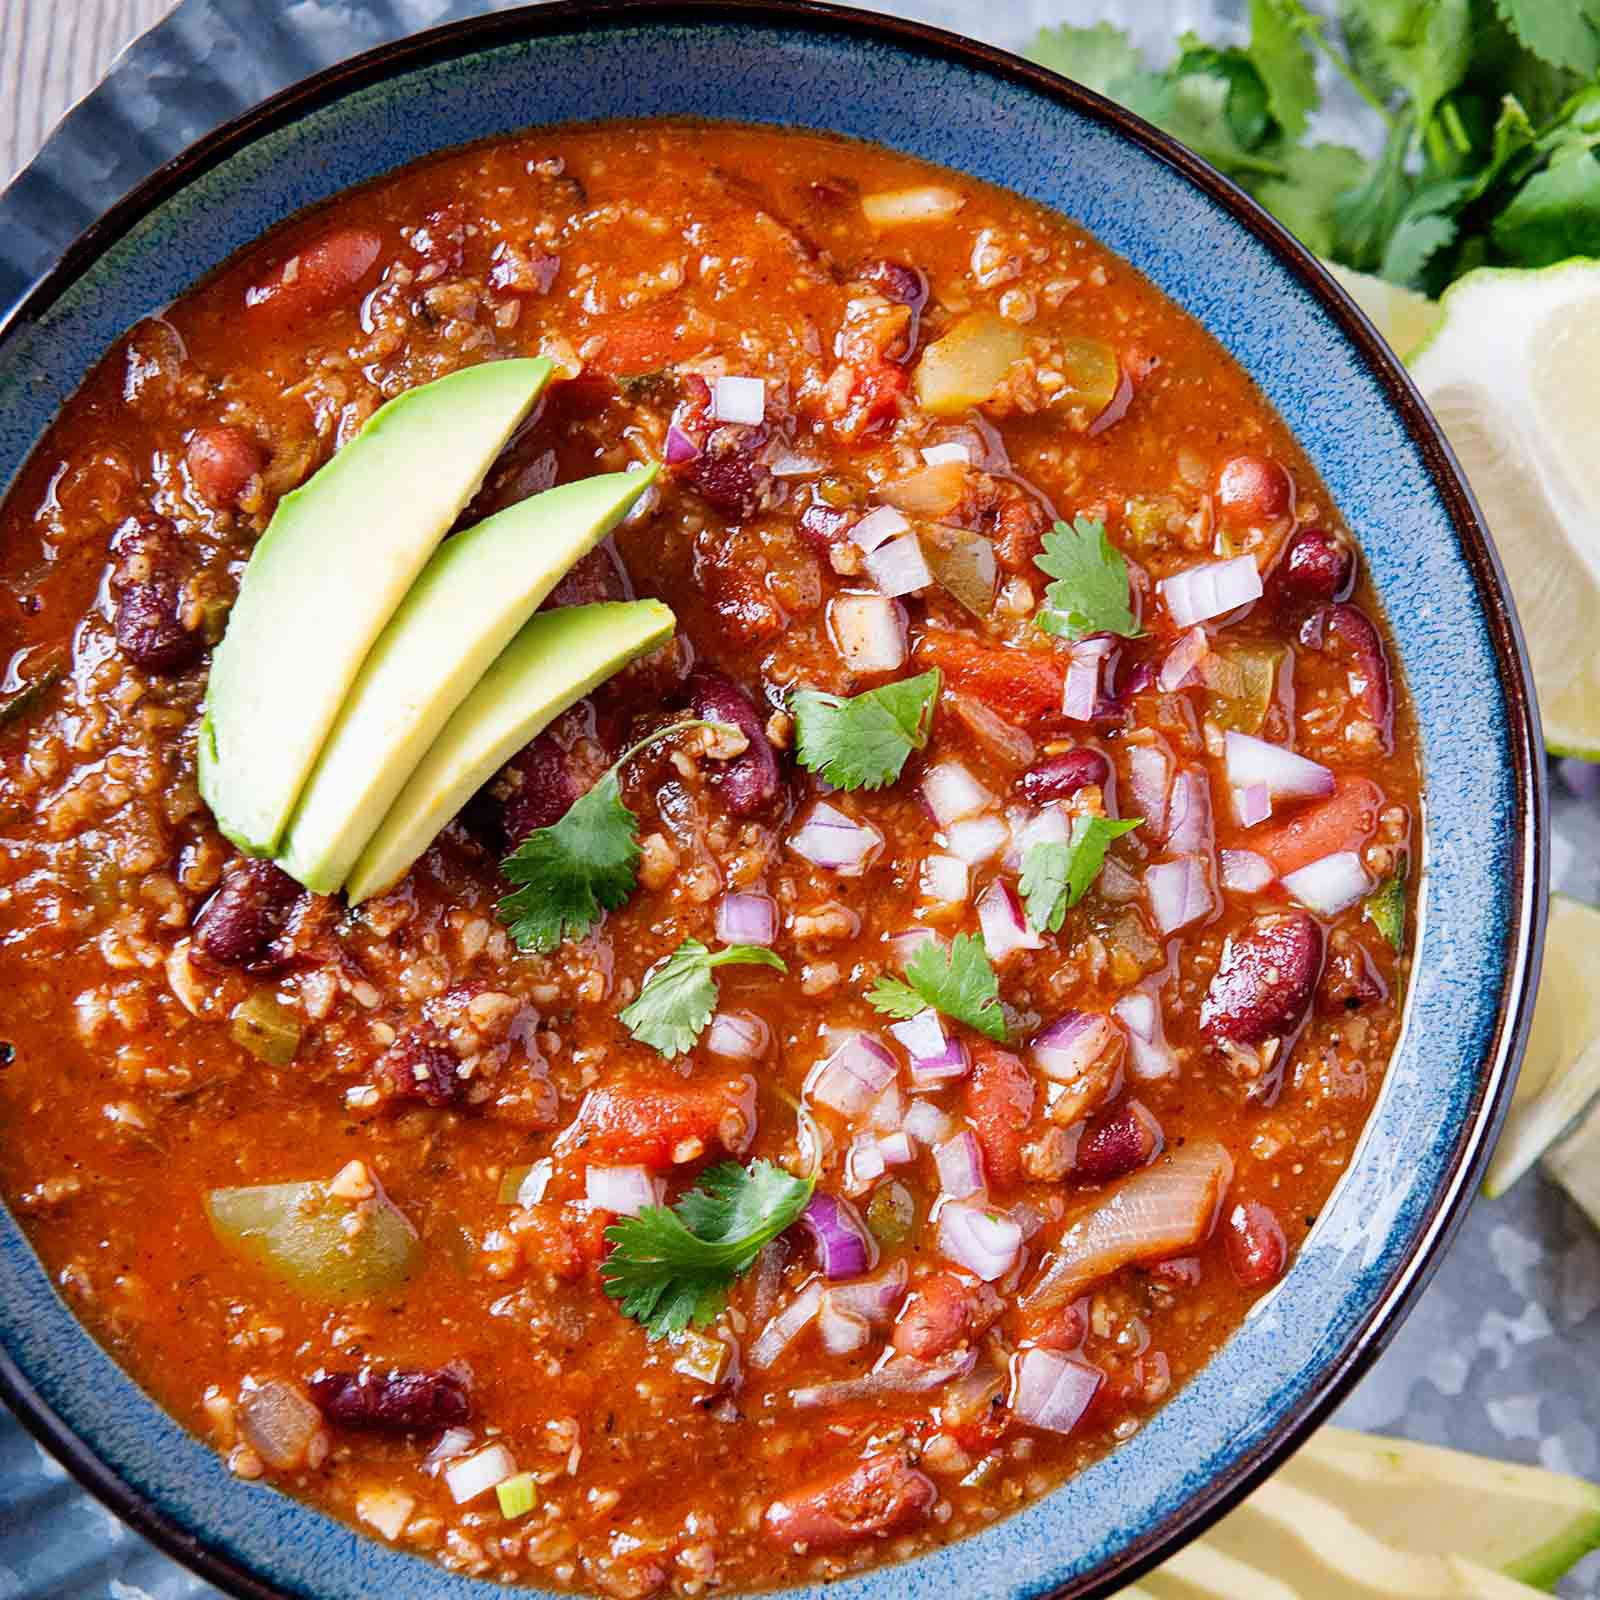 Easy Vegetarian Chili Even Meat Eaters Love